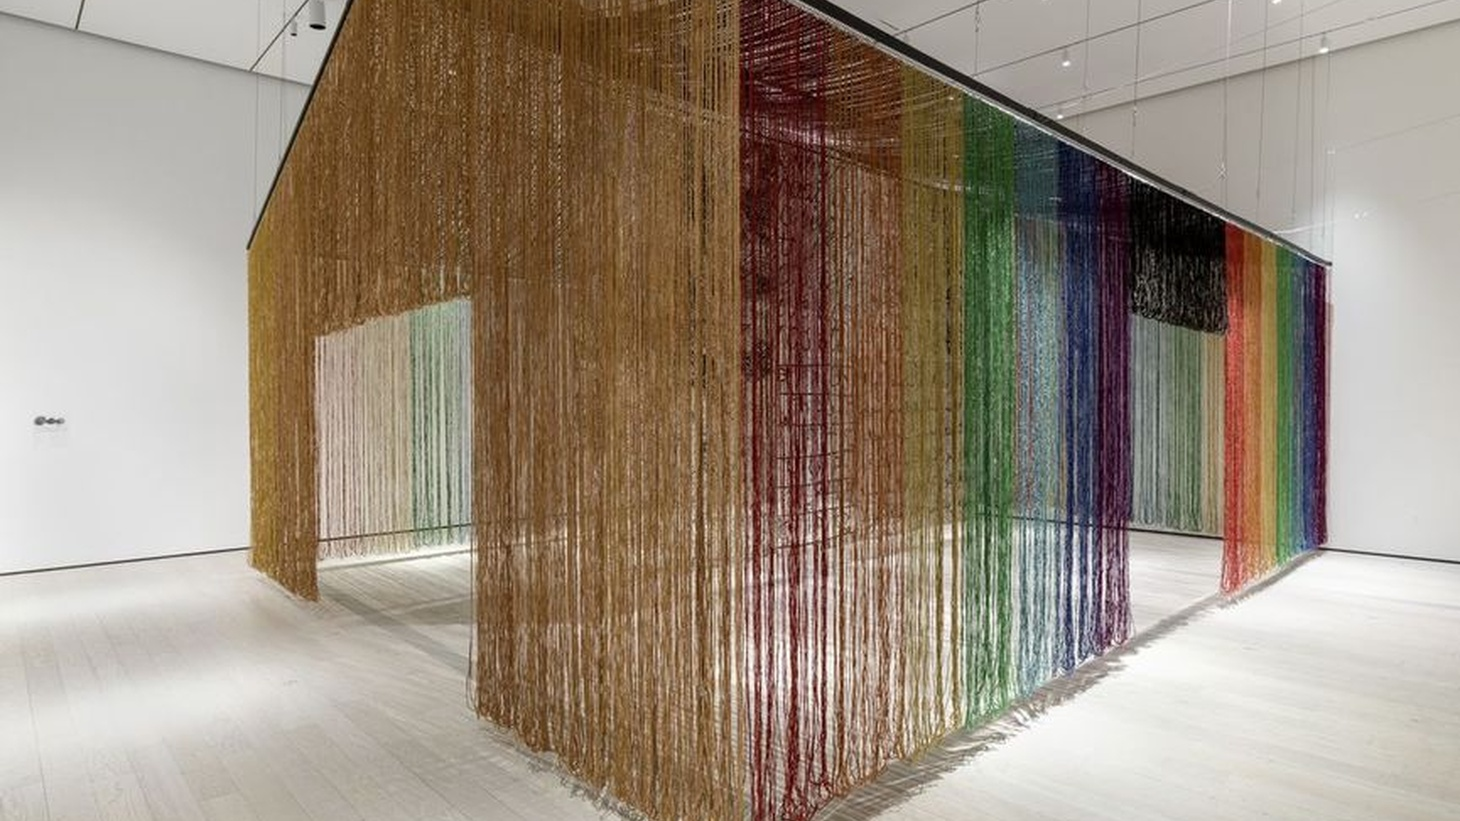 """Gu Wenda's """"United Nations: American Code"""" from """"The Allure of Matter: Material Art from China"""" now at LACMA."""